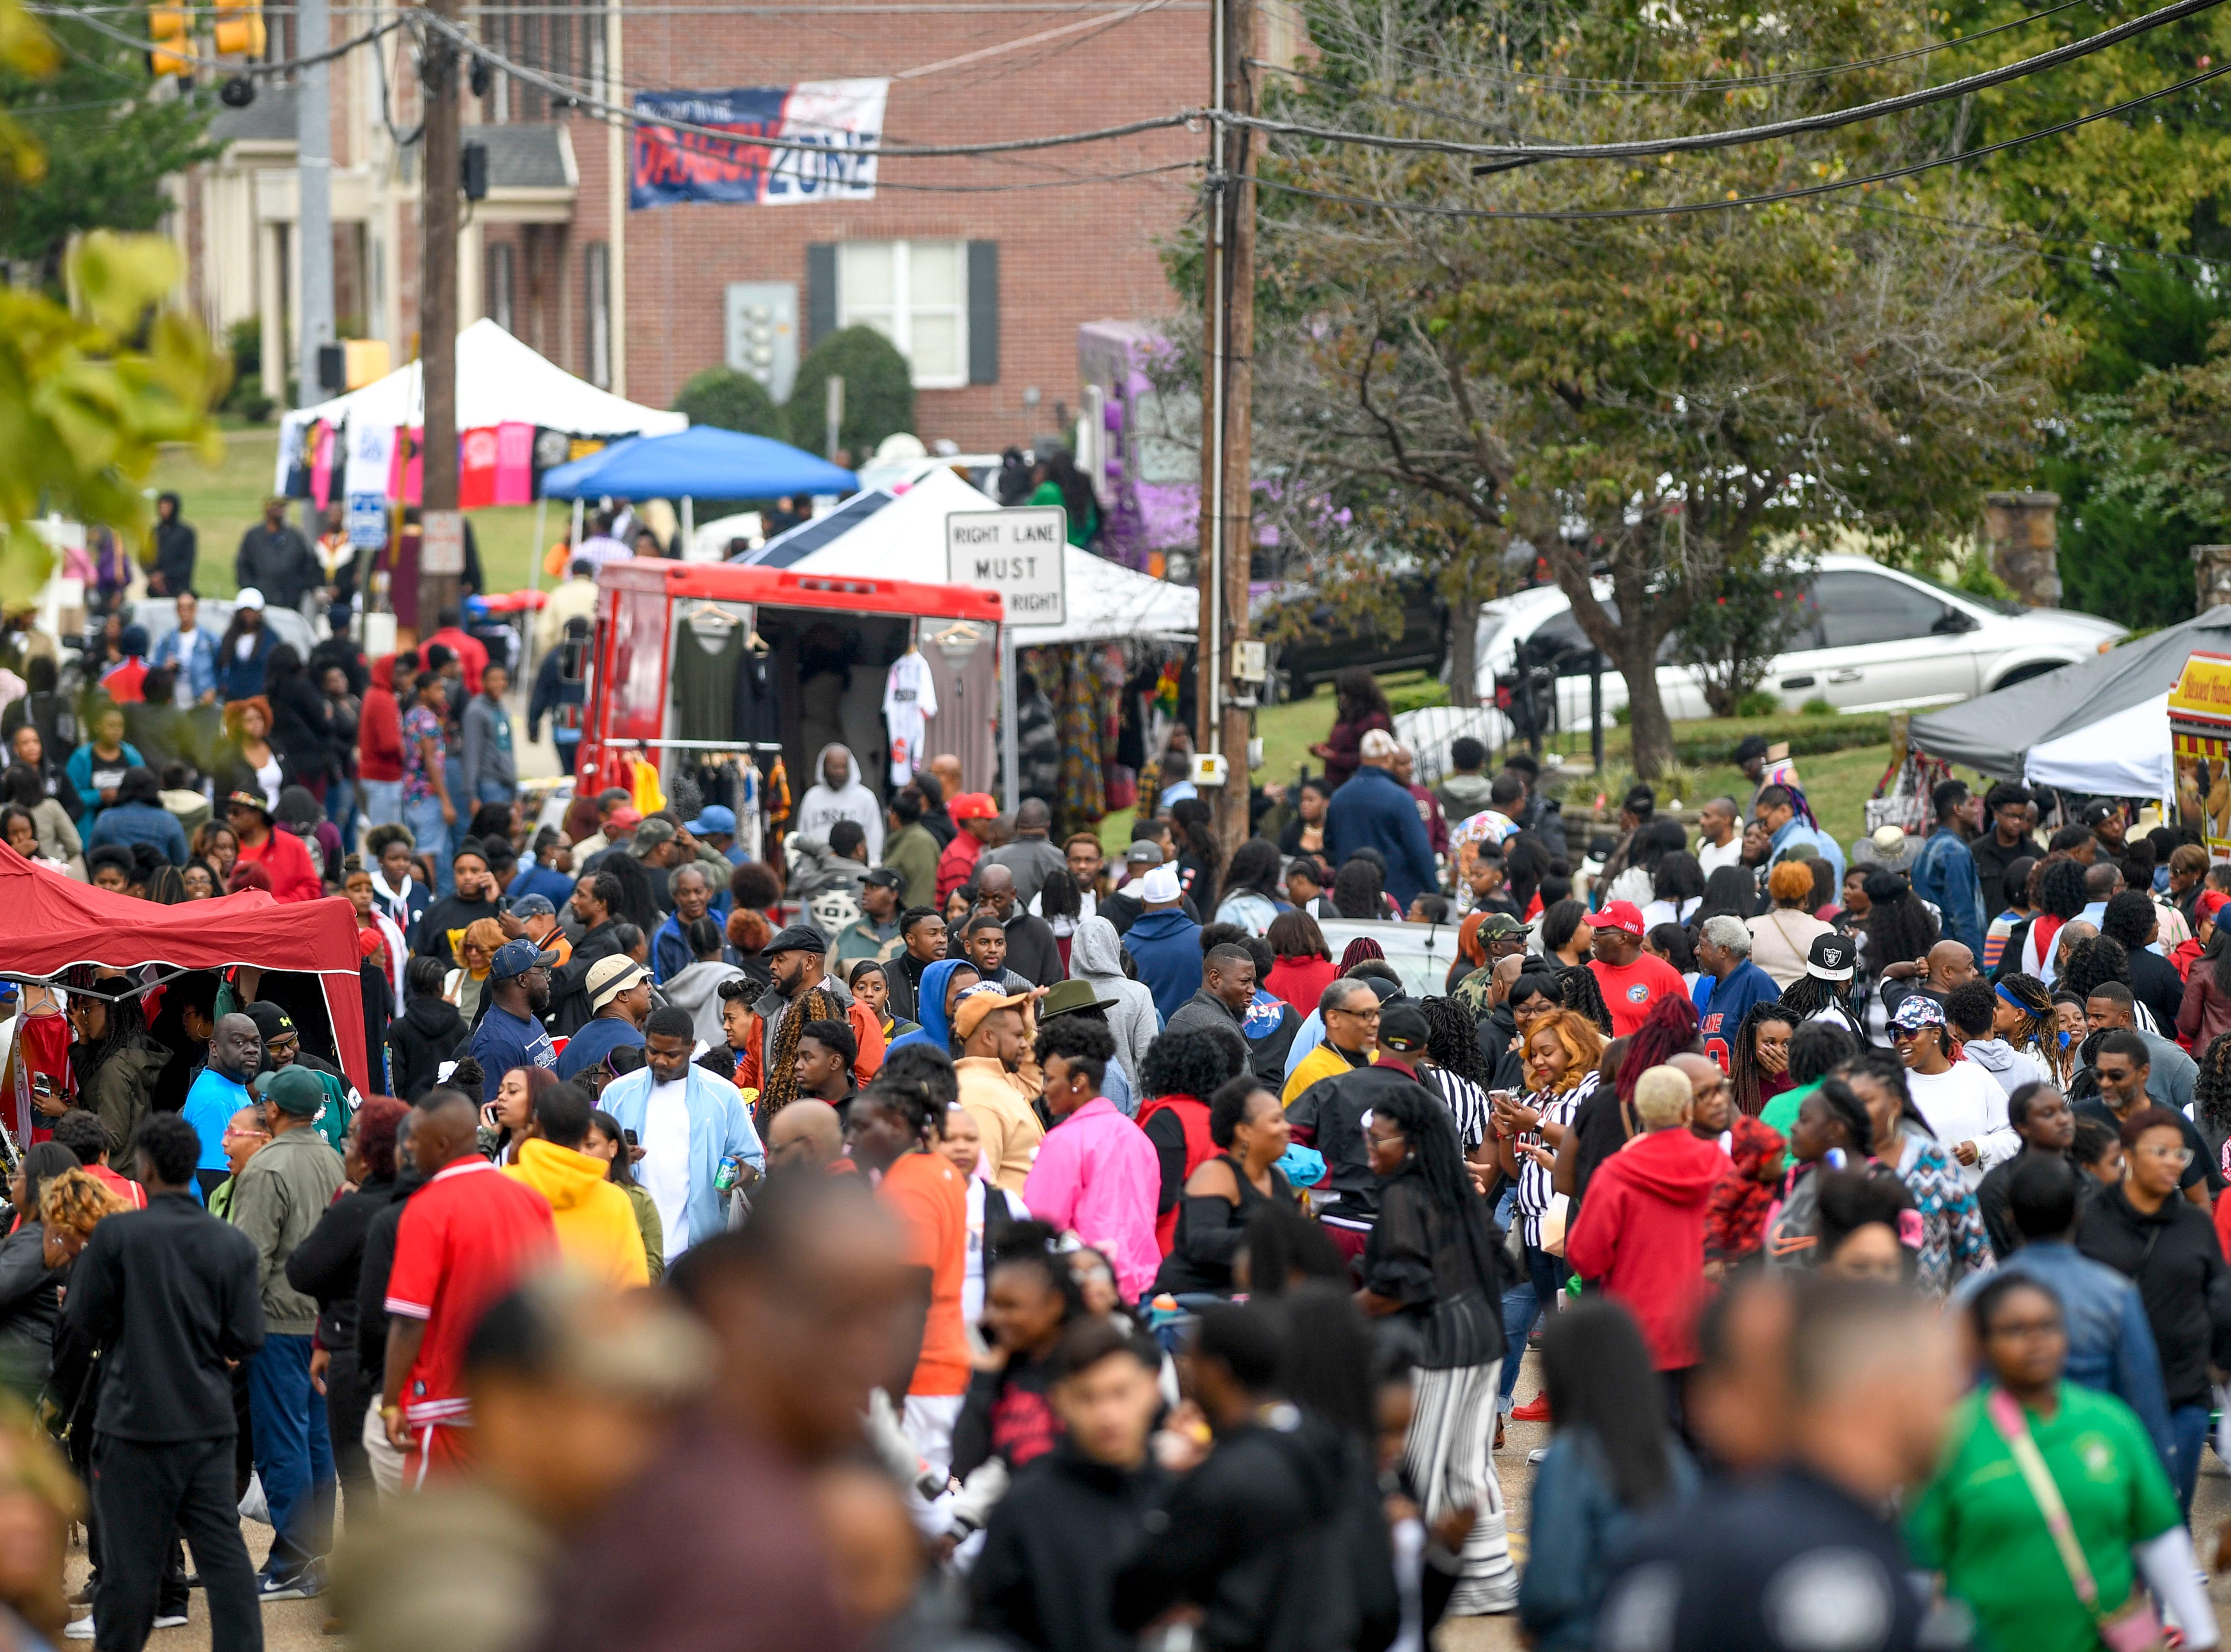 Crowds fill the street on Hayes Ave. for homecoming celebrations outside of T.R. White Sportsplex in Jackson, Tenn., on Saturday, Oct. 13, 2018.